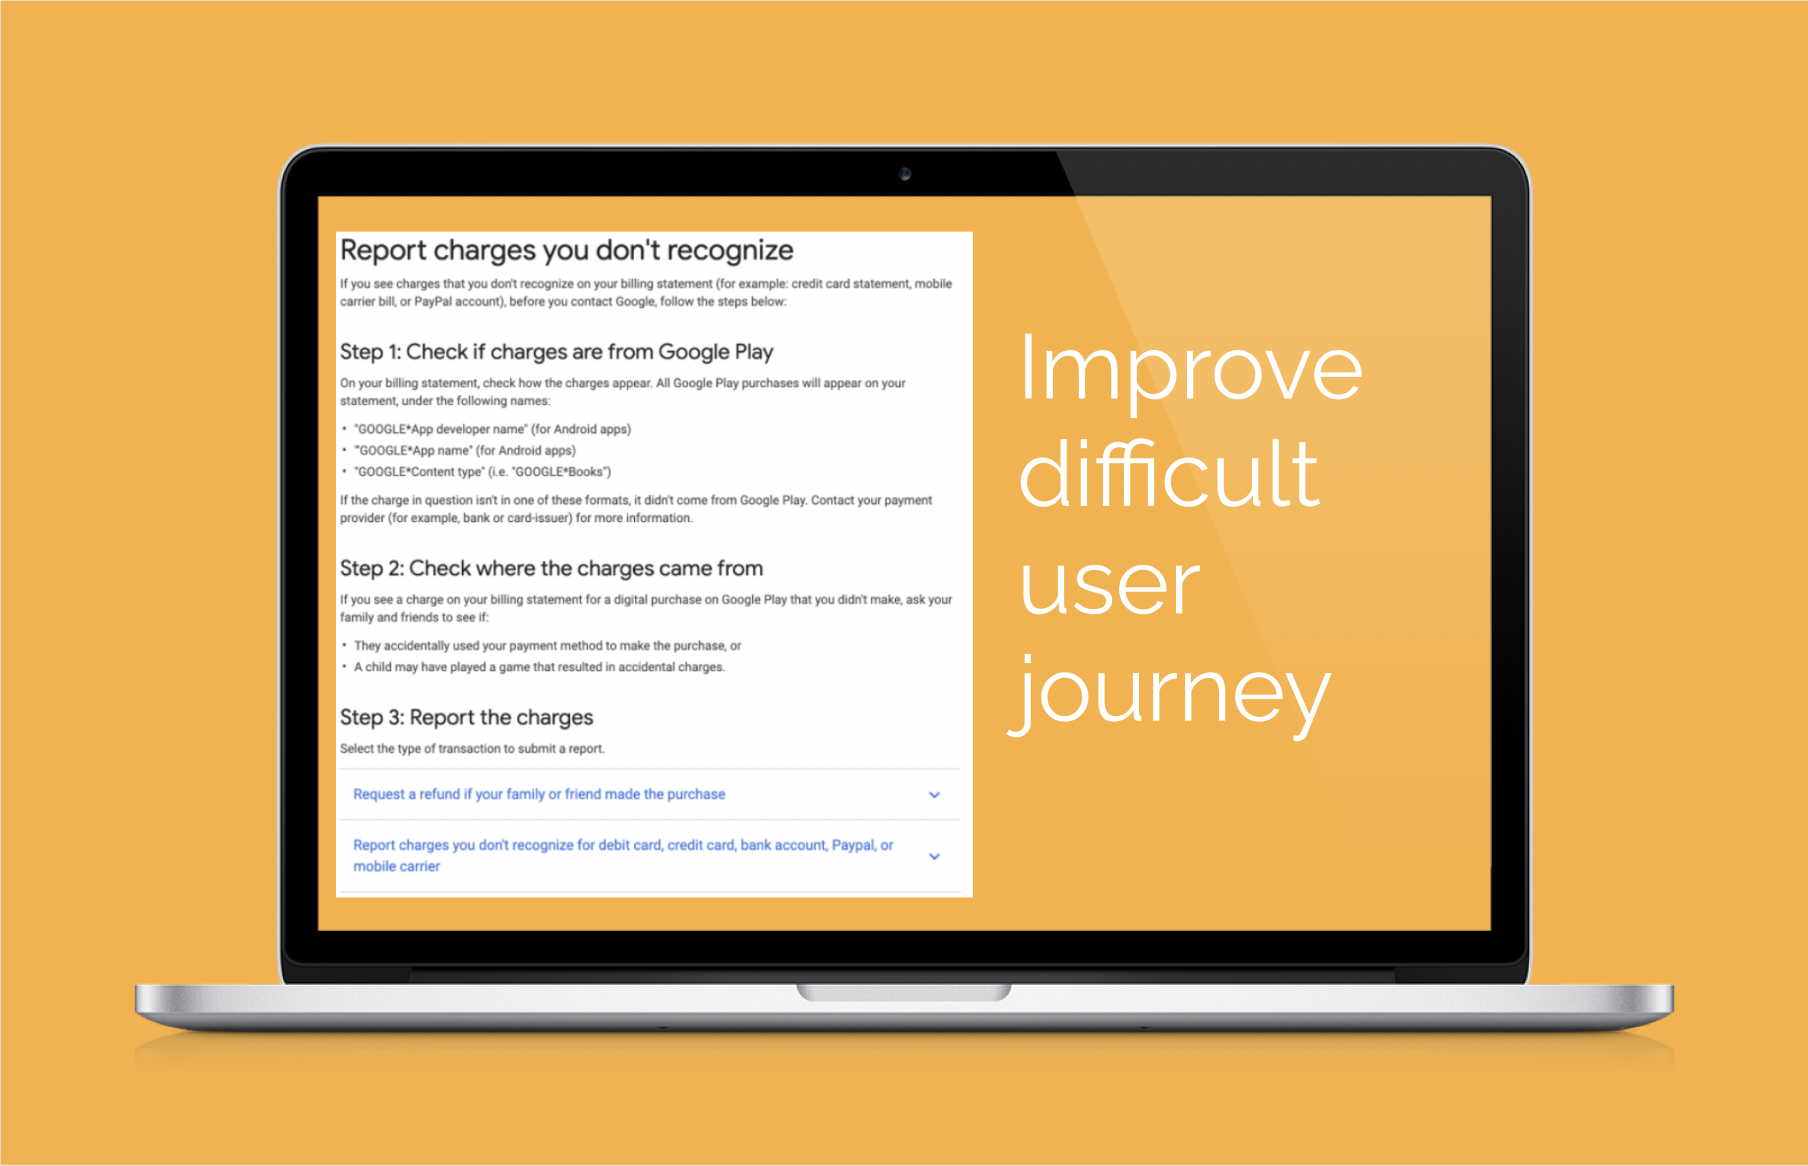 Improve user journey for unauthorized charges